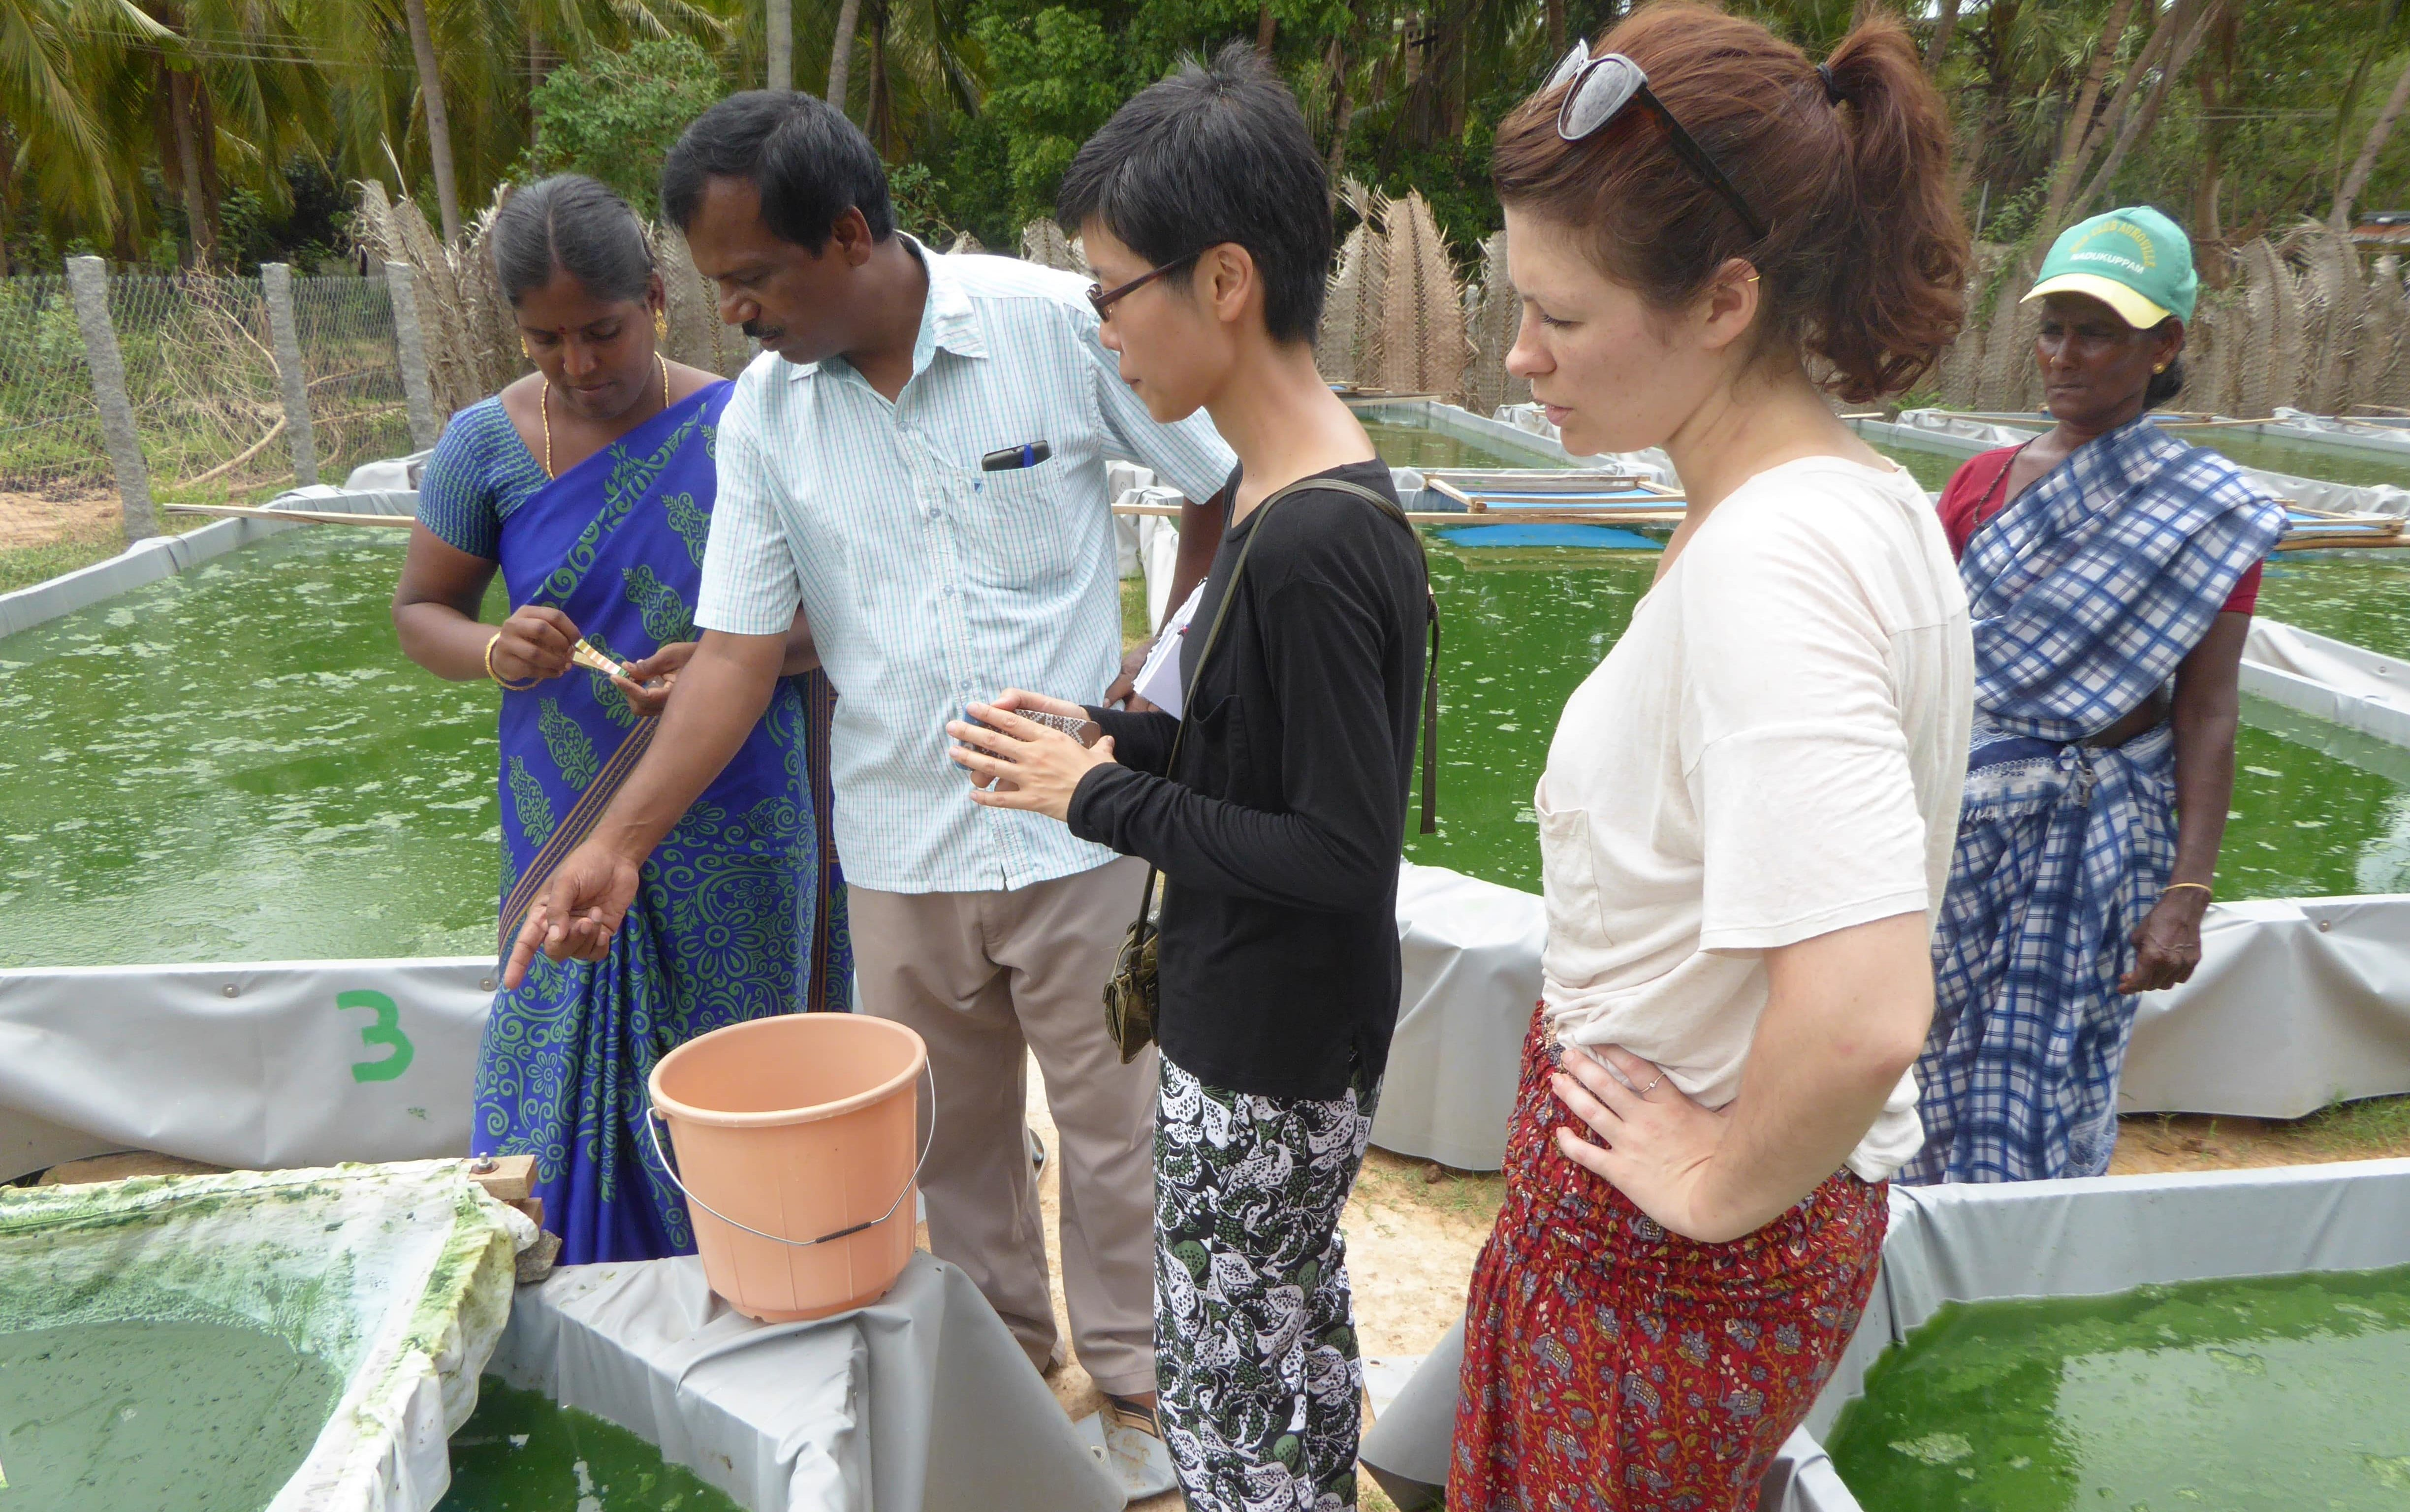 responsible volunteering abroad in India by sharing skills and working closely with local change makers